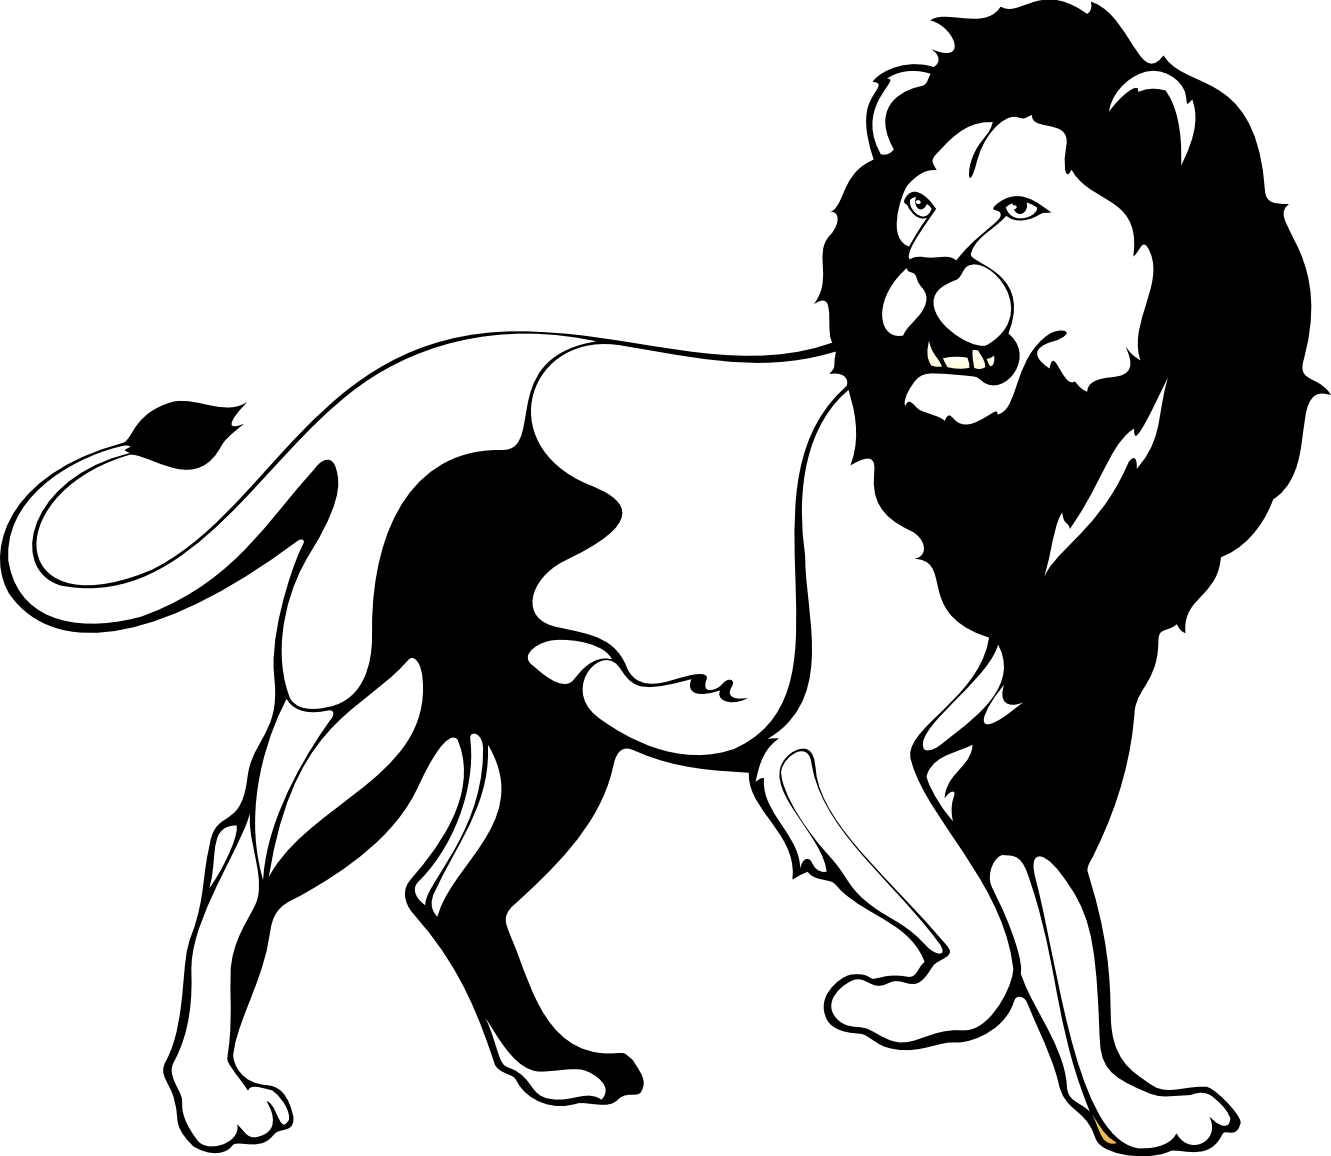 Crown clipart lion. Free graphic download clip